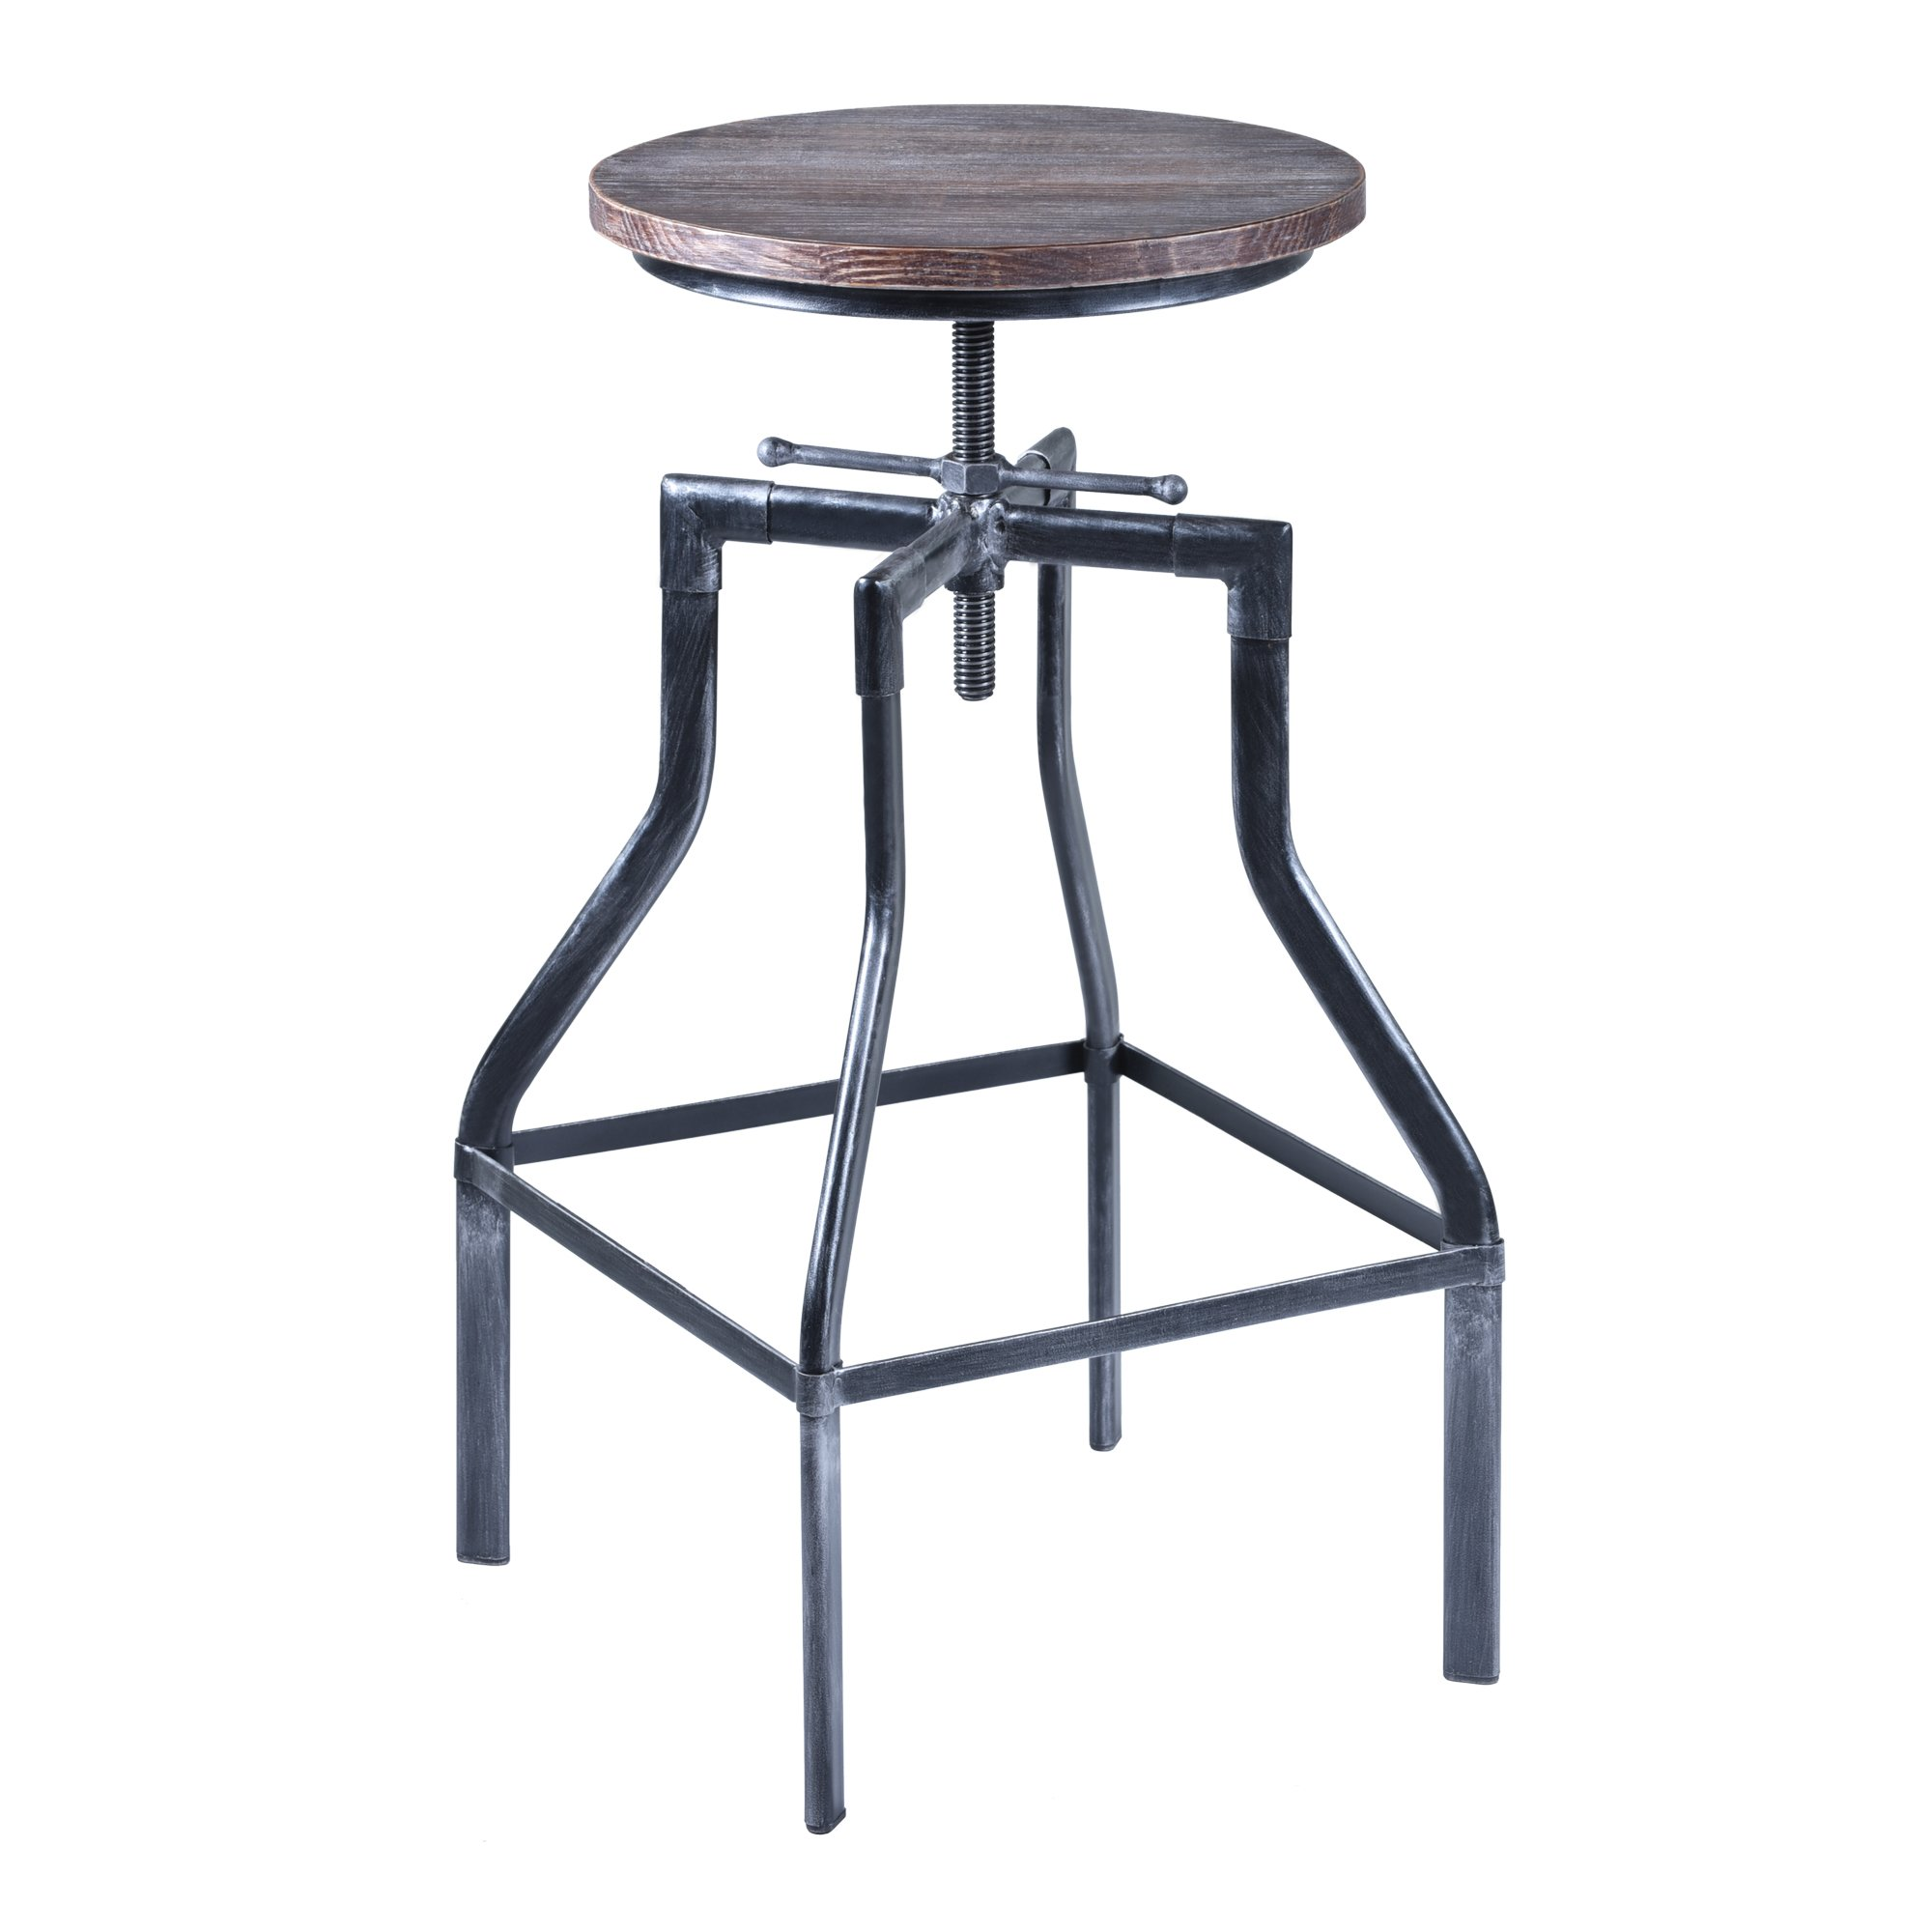 Armen Living Concord Adjustable Barstool in Pine Wood and Industrial Grey Metal Finish